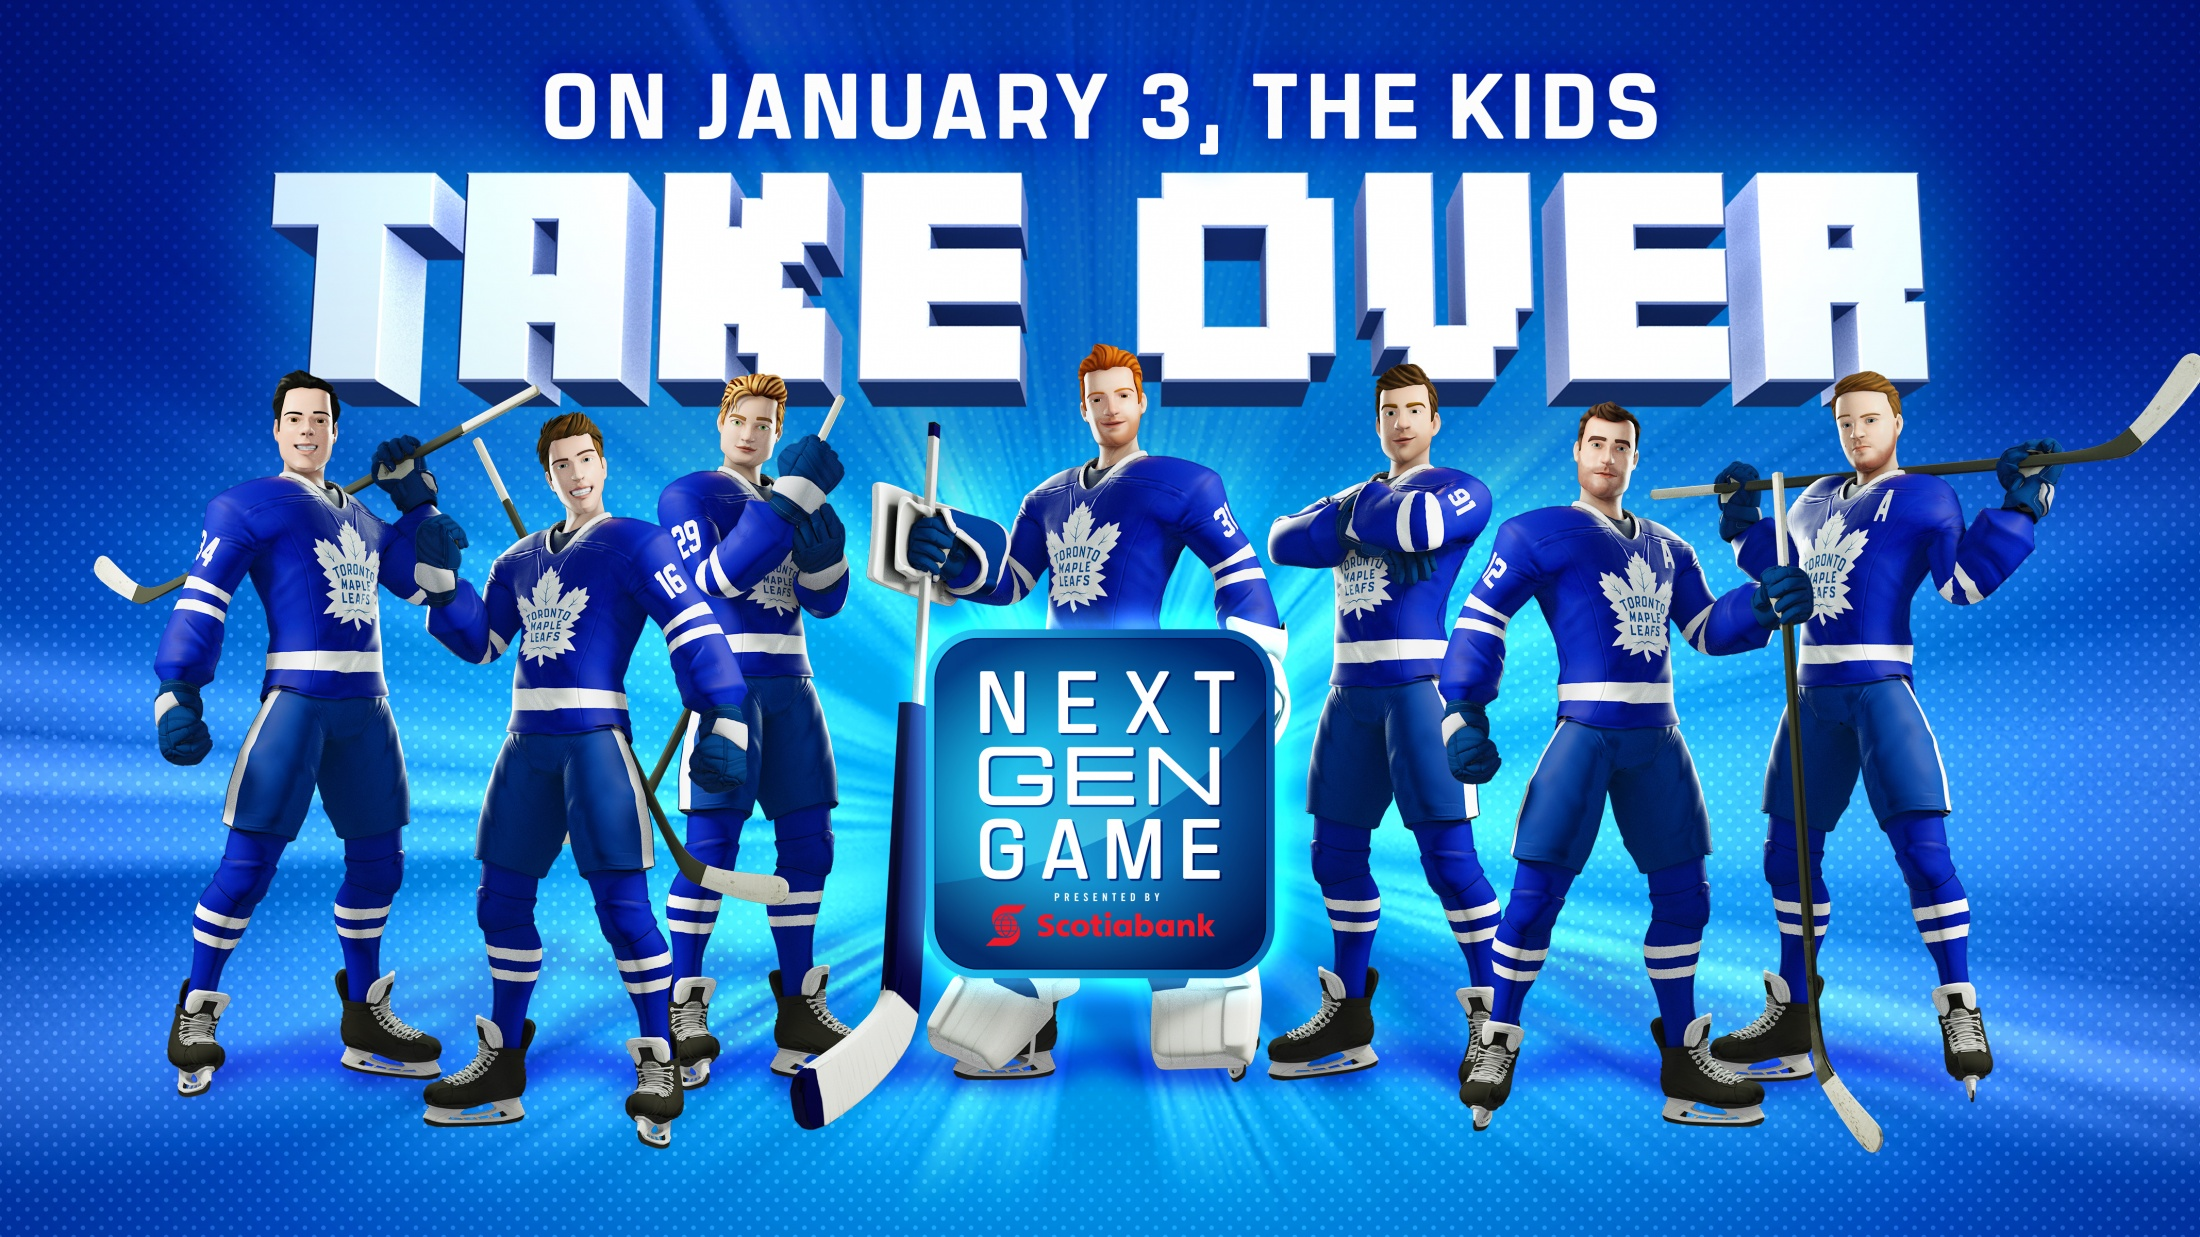 Thumbnail for Toronto Maple Leafs - Next Gen Game